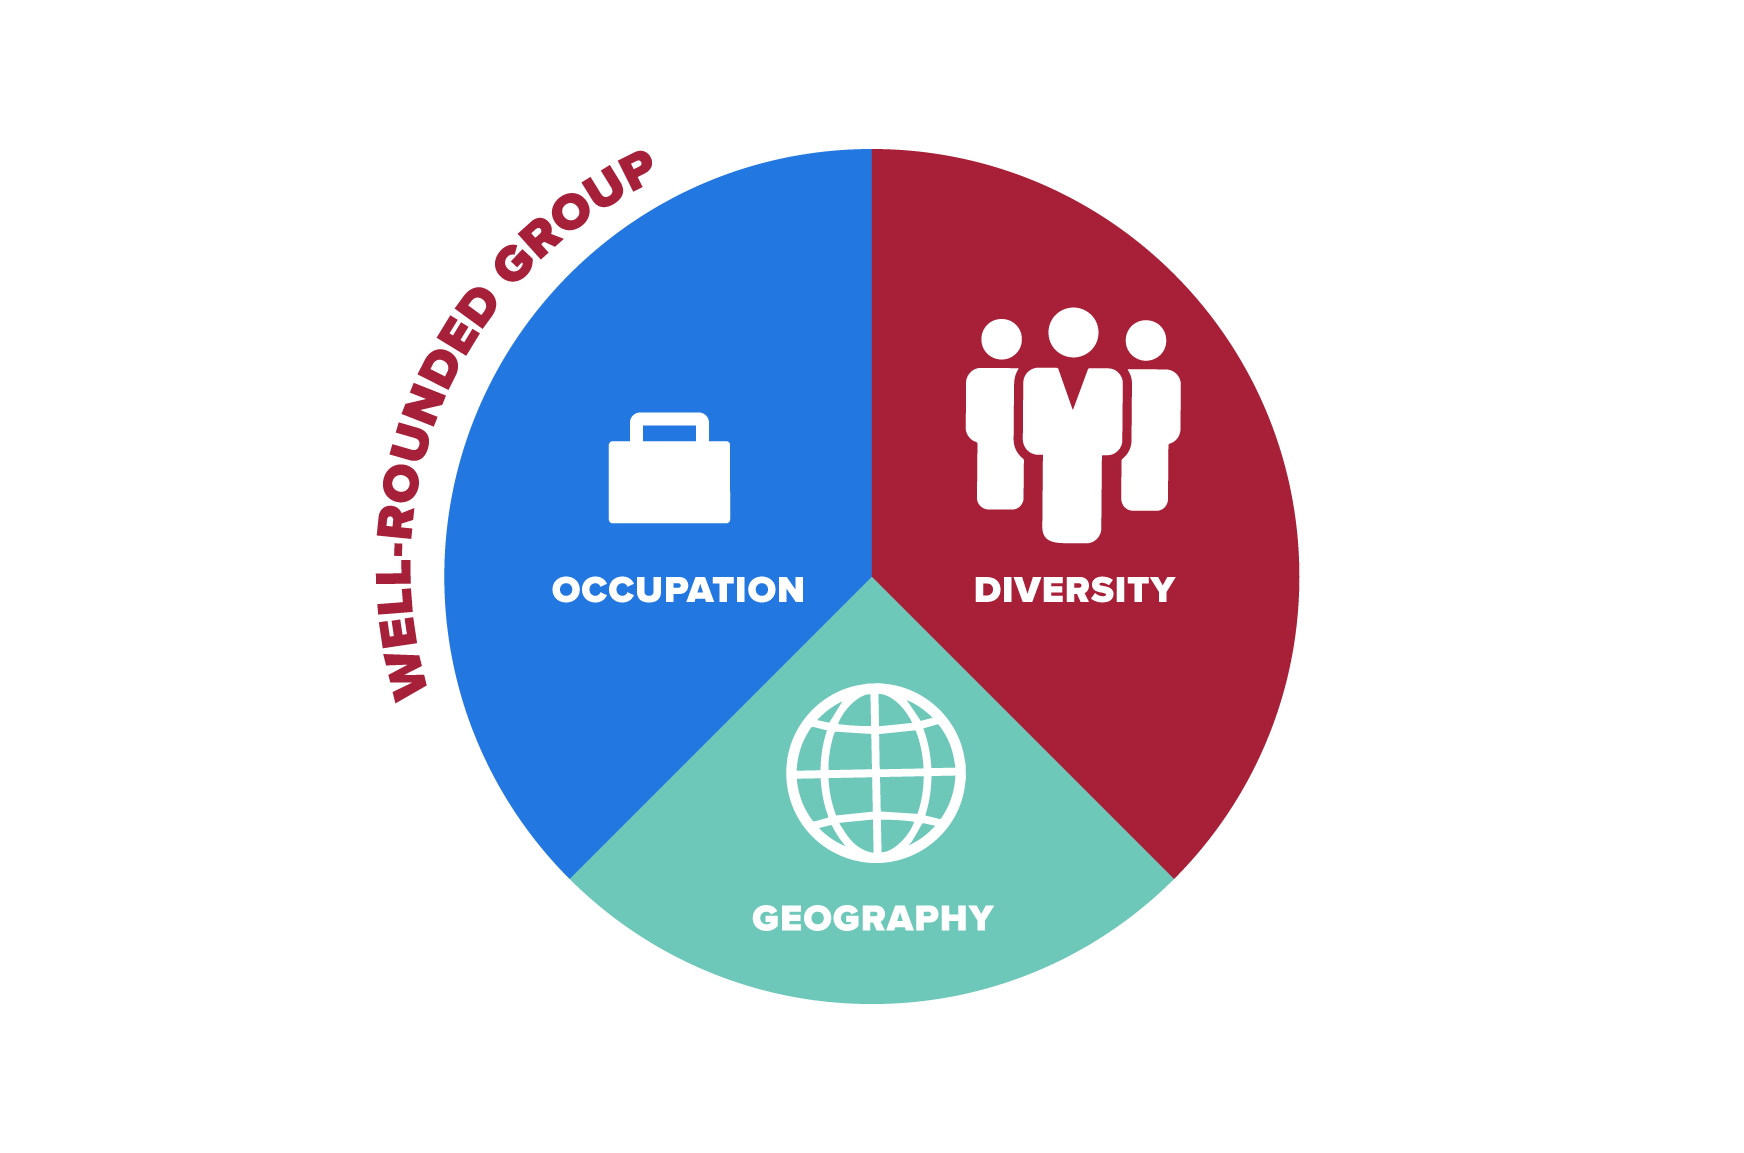 Image representing a well-rounded cadre: diversity, geography, occupation